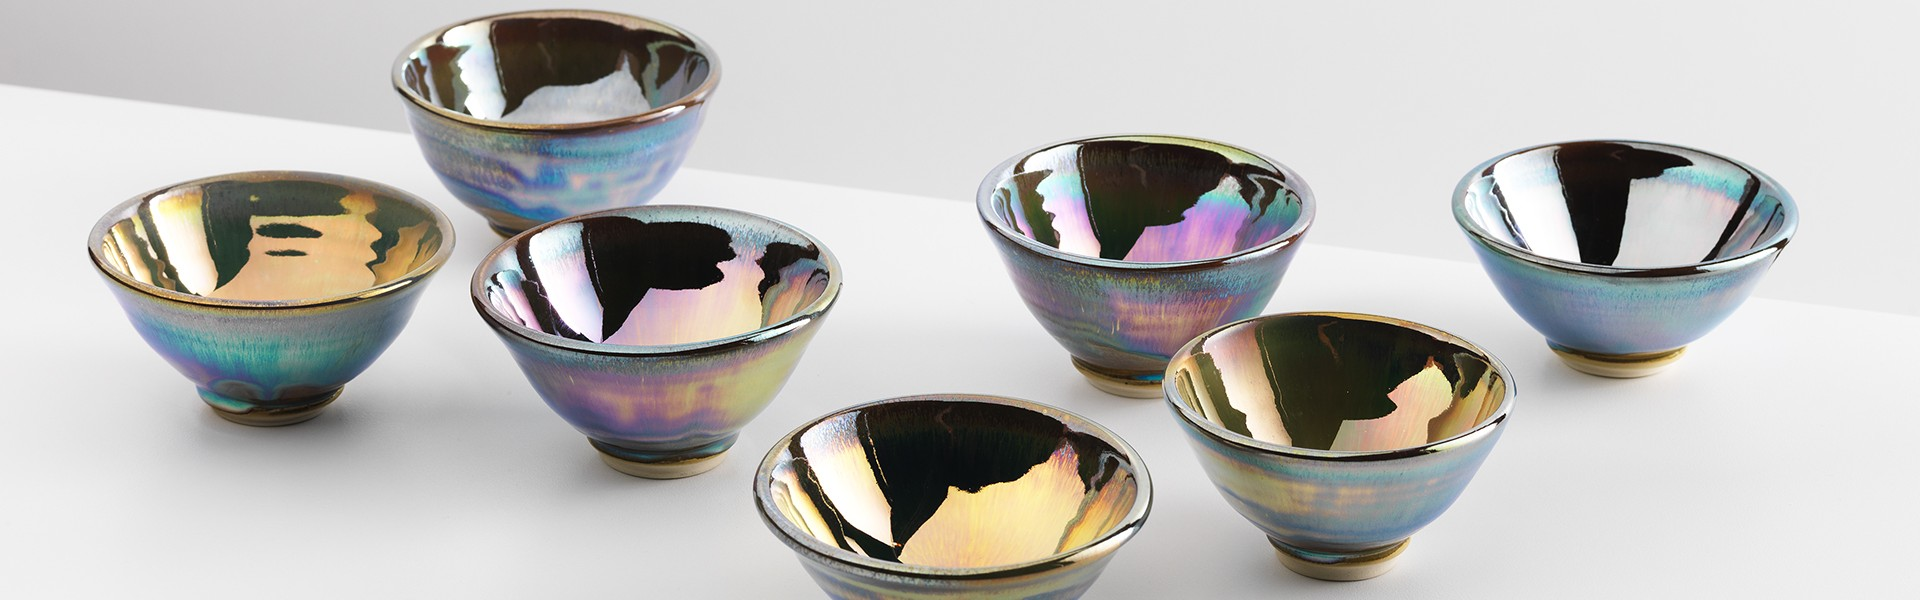 single watergaw in glaze lustre bowls